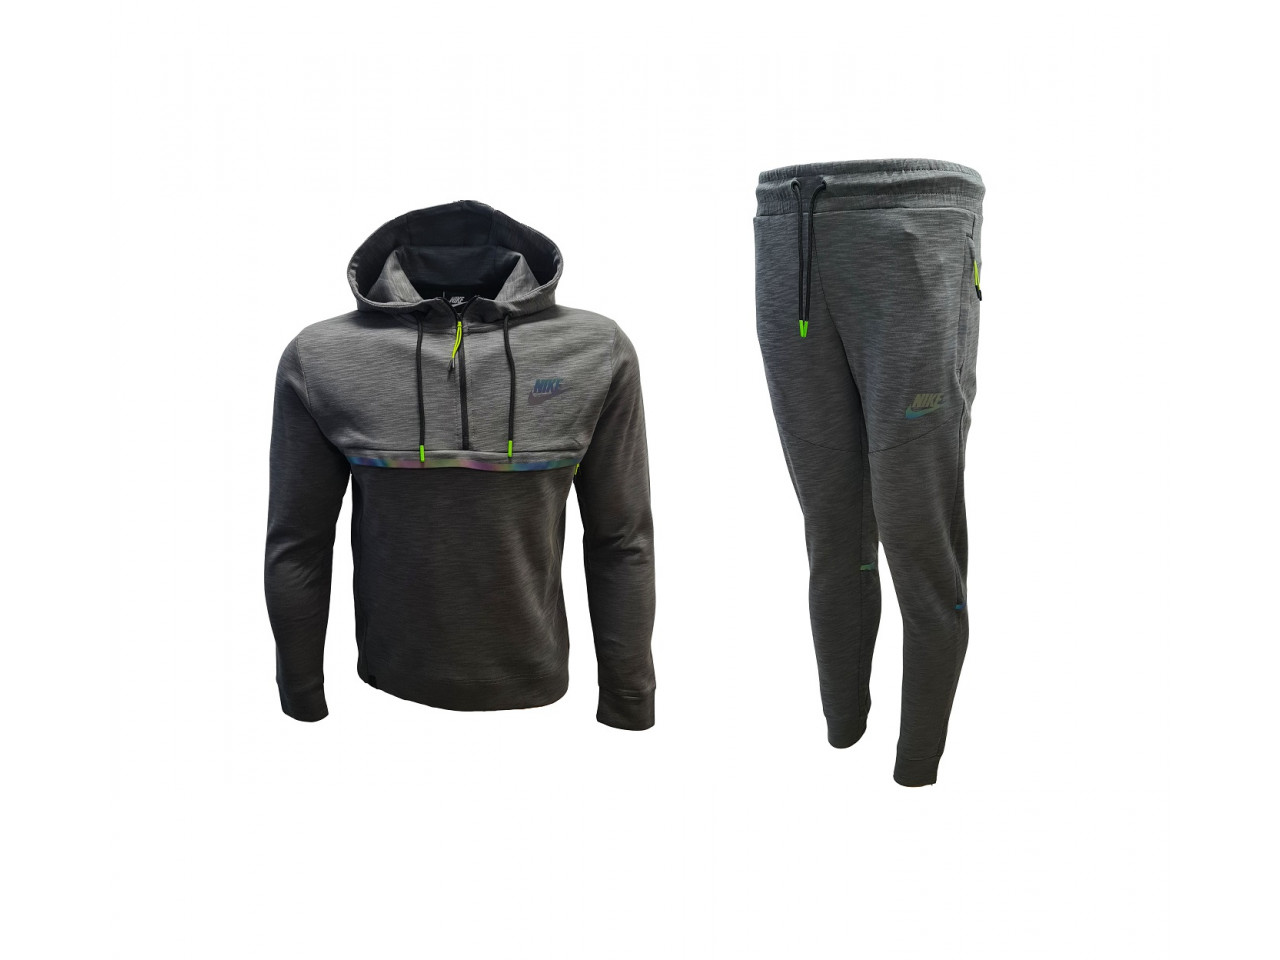 Nike Sweatshirt + Pants Dark Grey